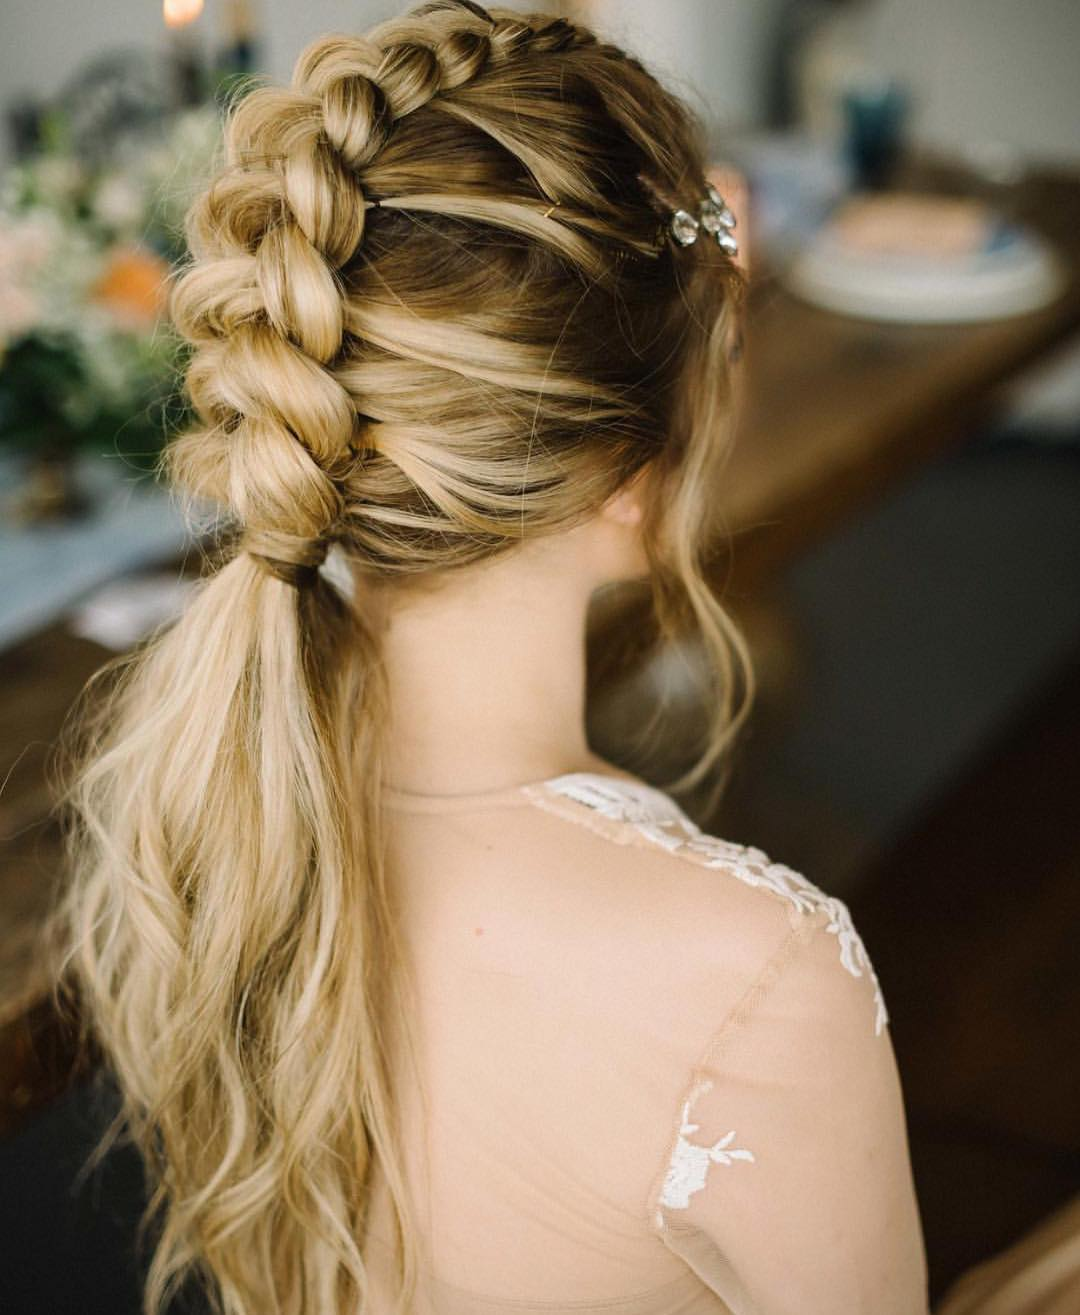 Hairstyles For Girls For Wedding: 10 Braided Hairstyles For Long Hair